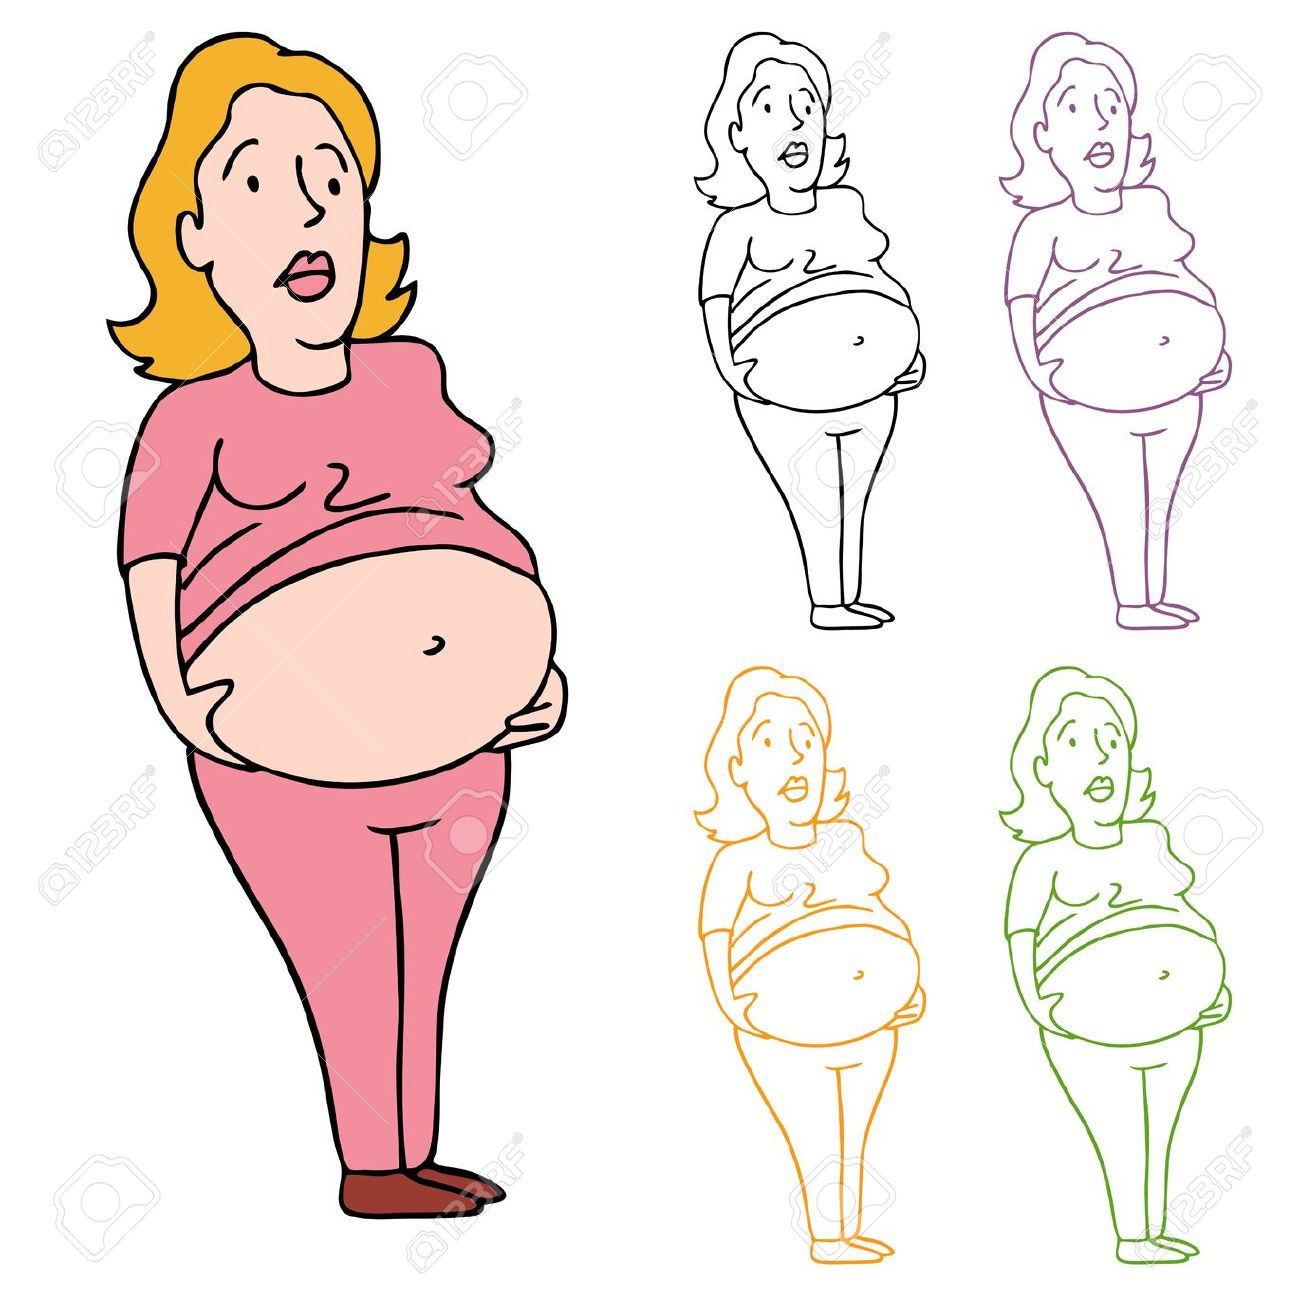 Fat belly clipart.